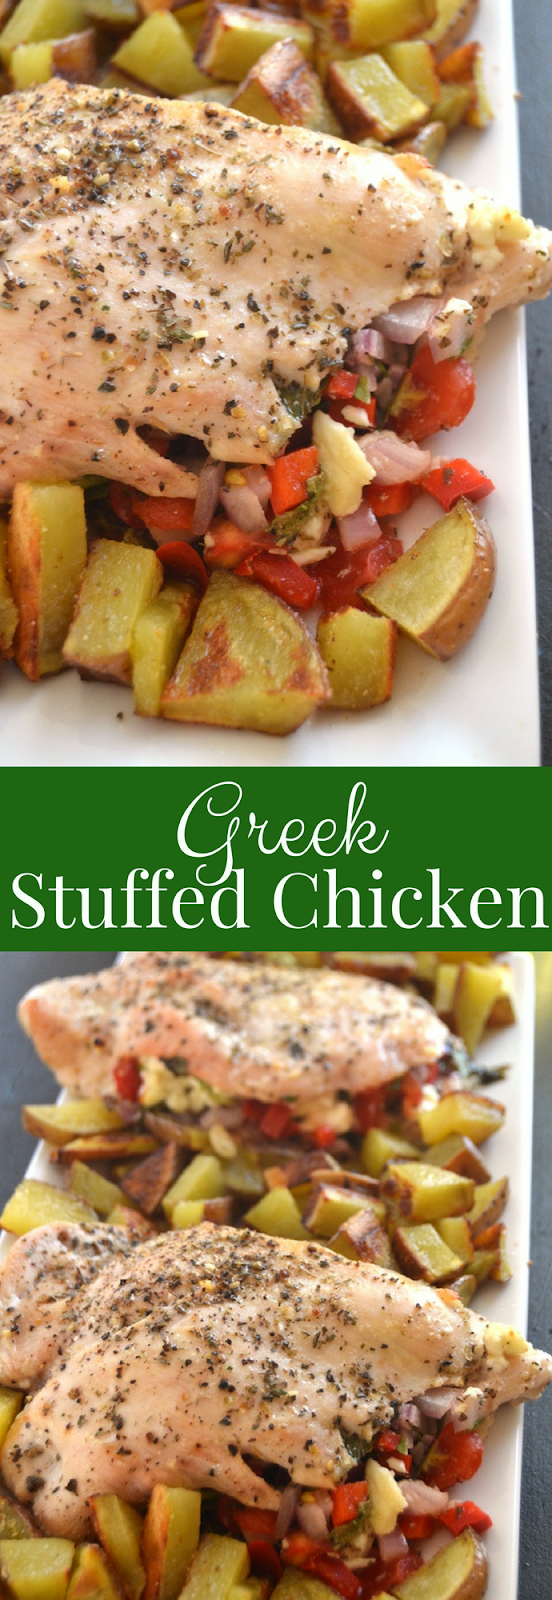 Greek Stuffed Chicken is loaded with feta cheese, tomatoes, red onion, spinach and bell peppers and marinaded in a delicious lemon dressing for the perfect meal! www.nutritionistreviews.com